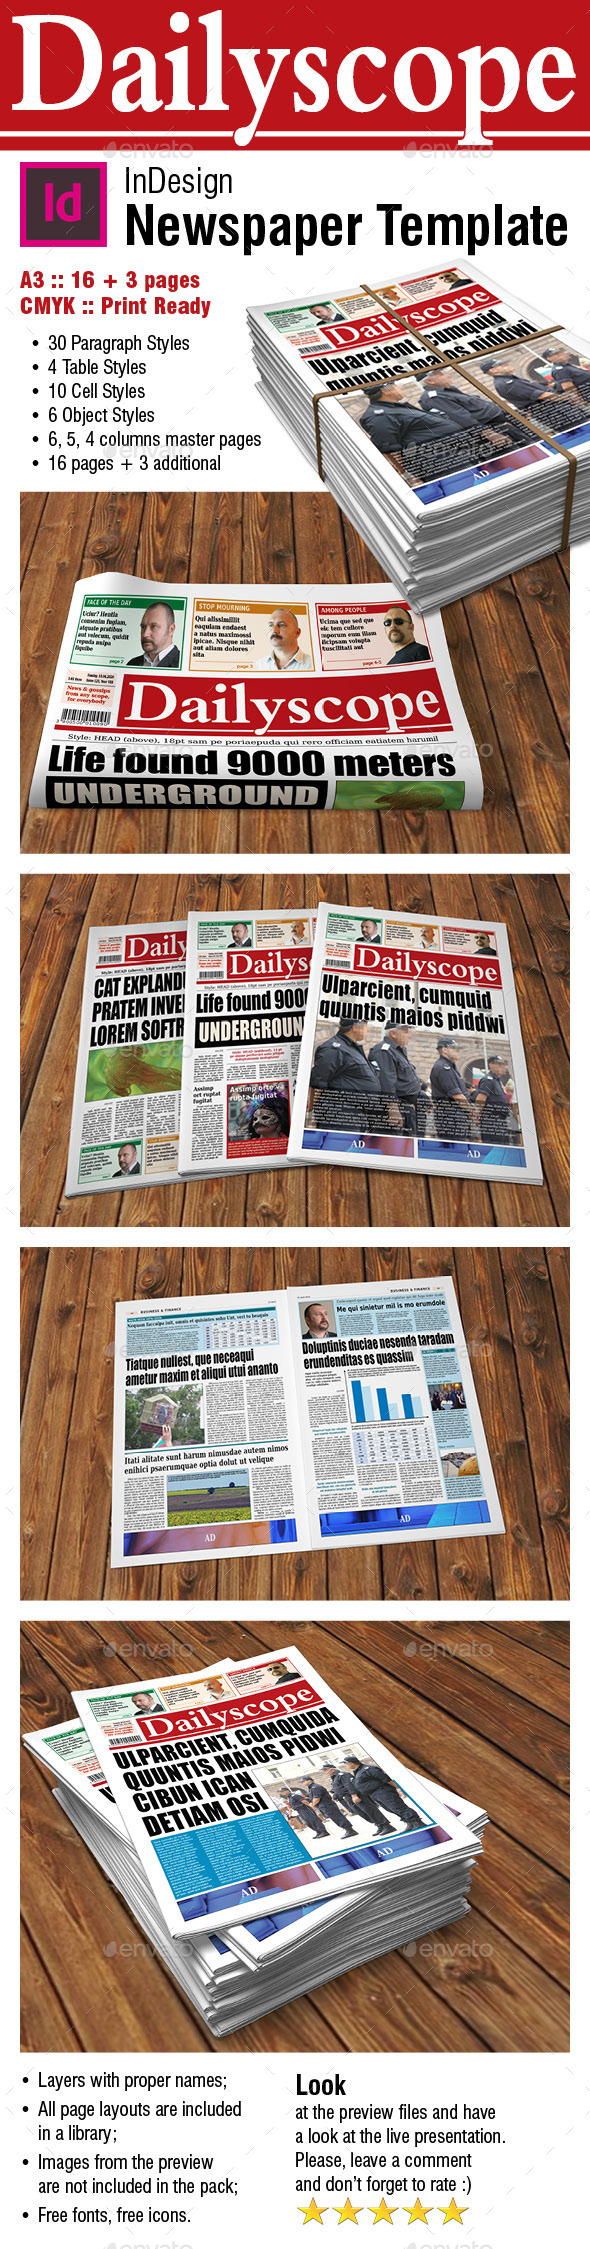 GraphicRiver DailyScope Newspaper Template 16 & 3 Pages 10472123